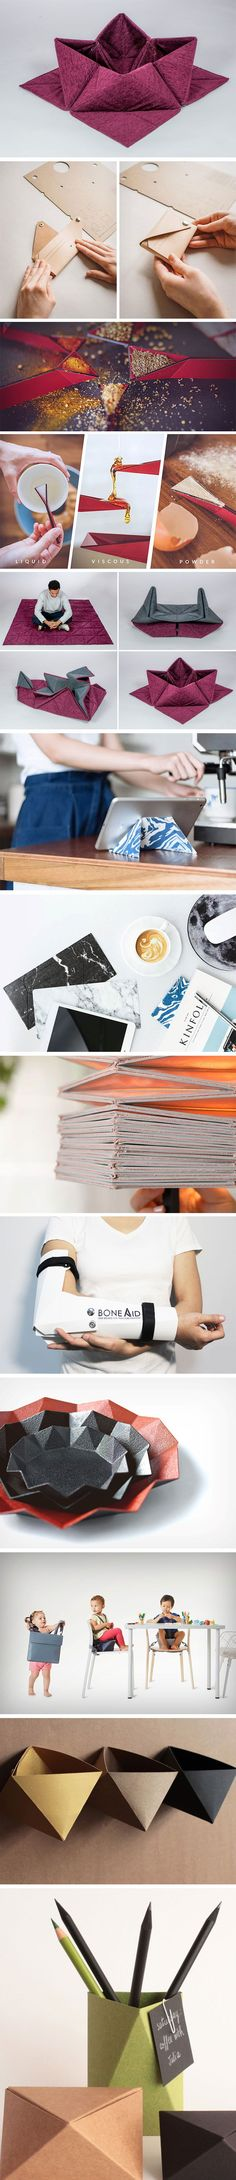 Origami-inspired product designs that will simply transform your lifestyle! Origami Lamp, Heavy Weights, Lemur, King Kong, Perception, Installation Art, Samurai, Juice, Challenges